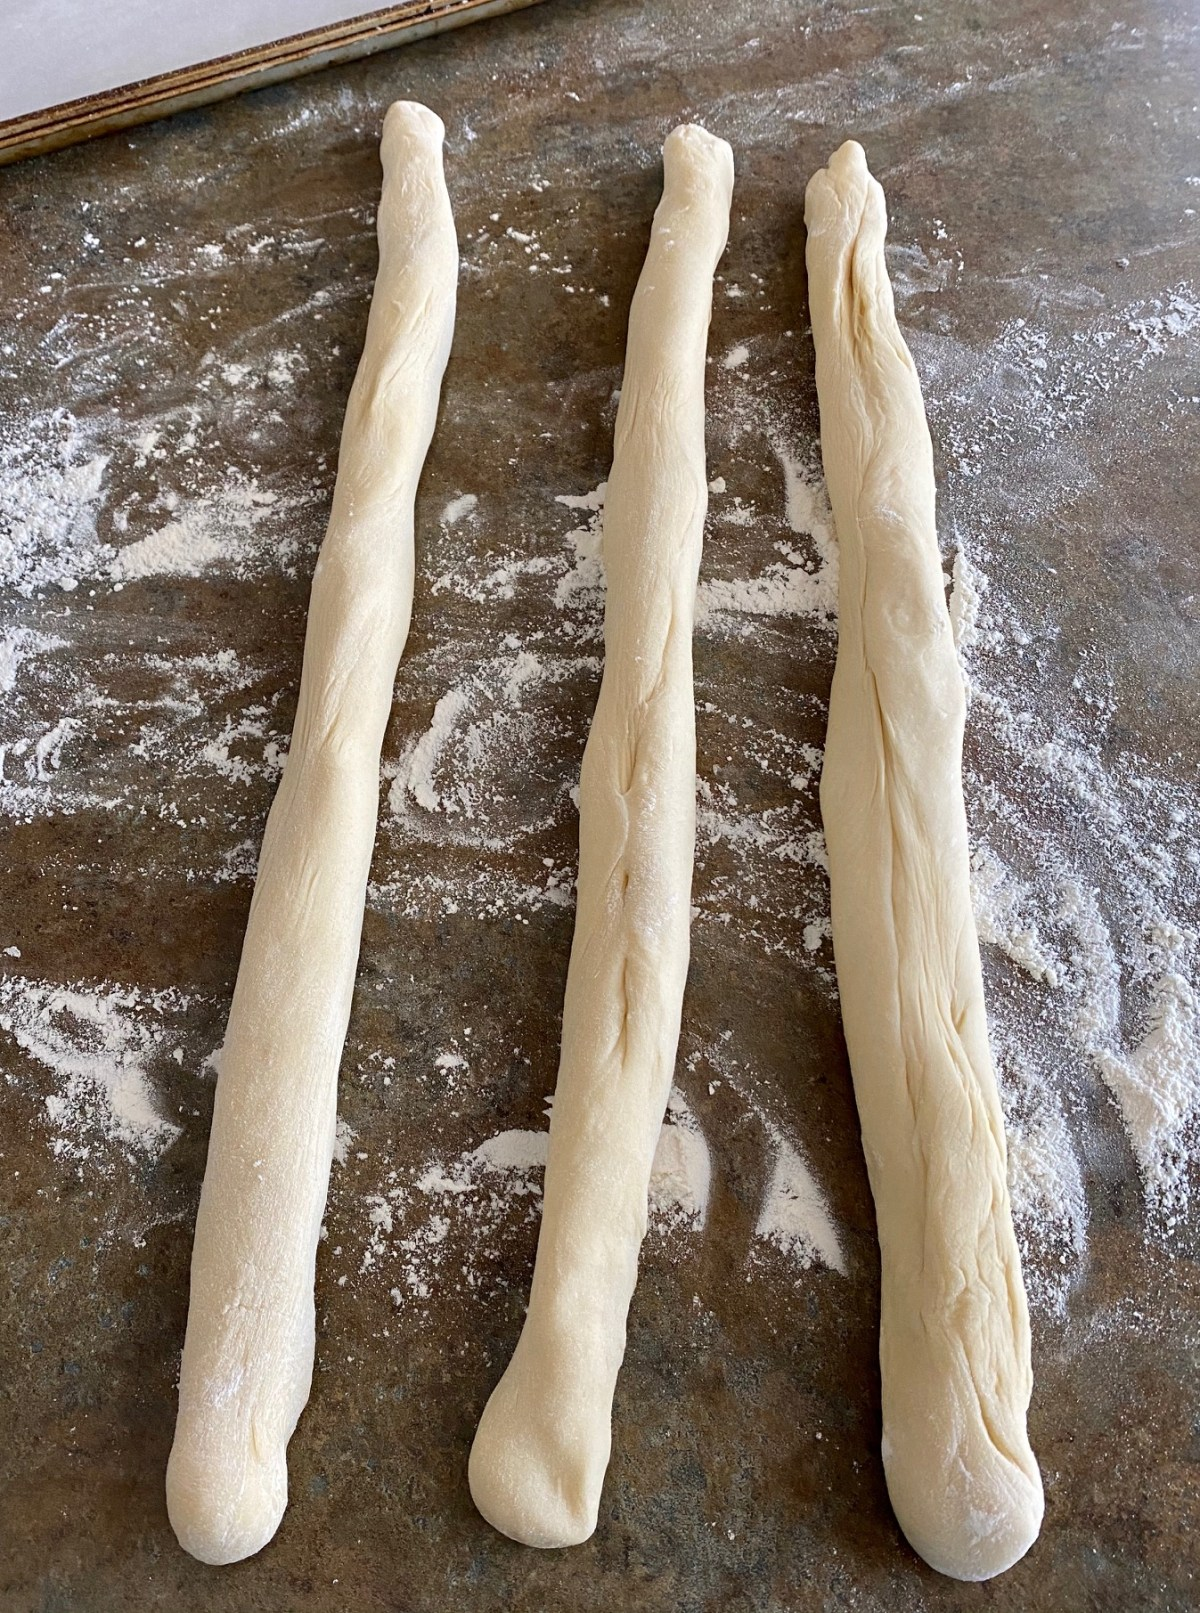 Everything Bread dough shaped into three 20-inch ropes. #everythingbread #easybreadrecipes #homemadebread #breadfromscratch #braidedbread